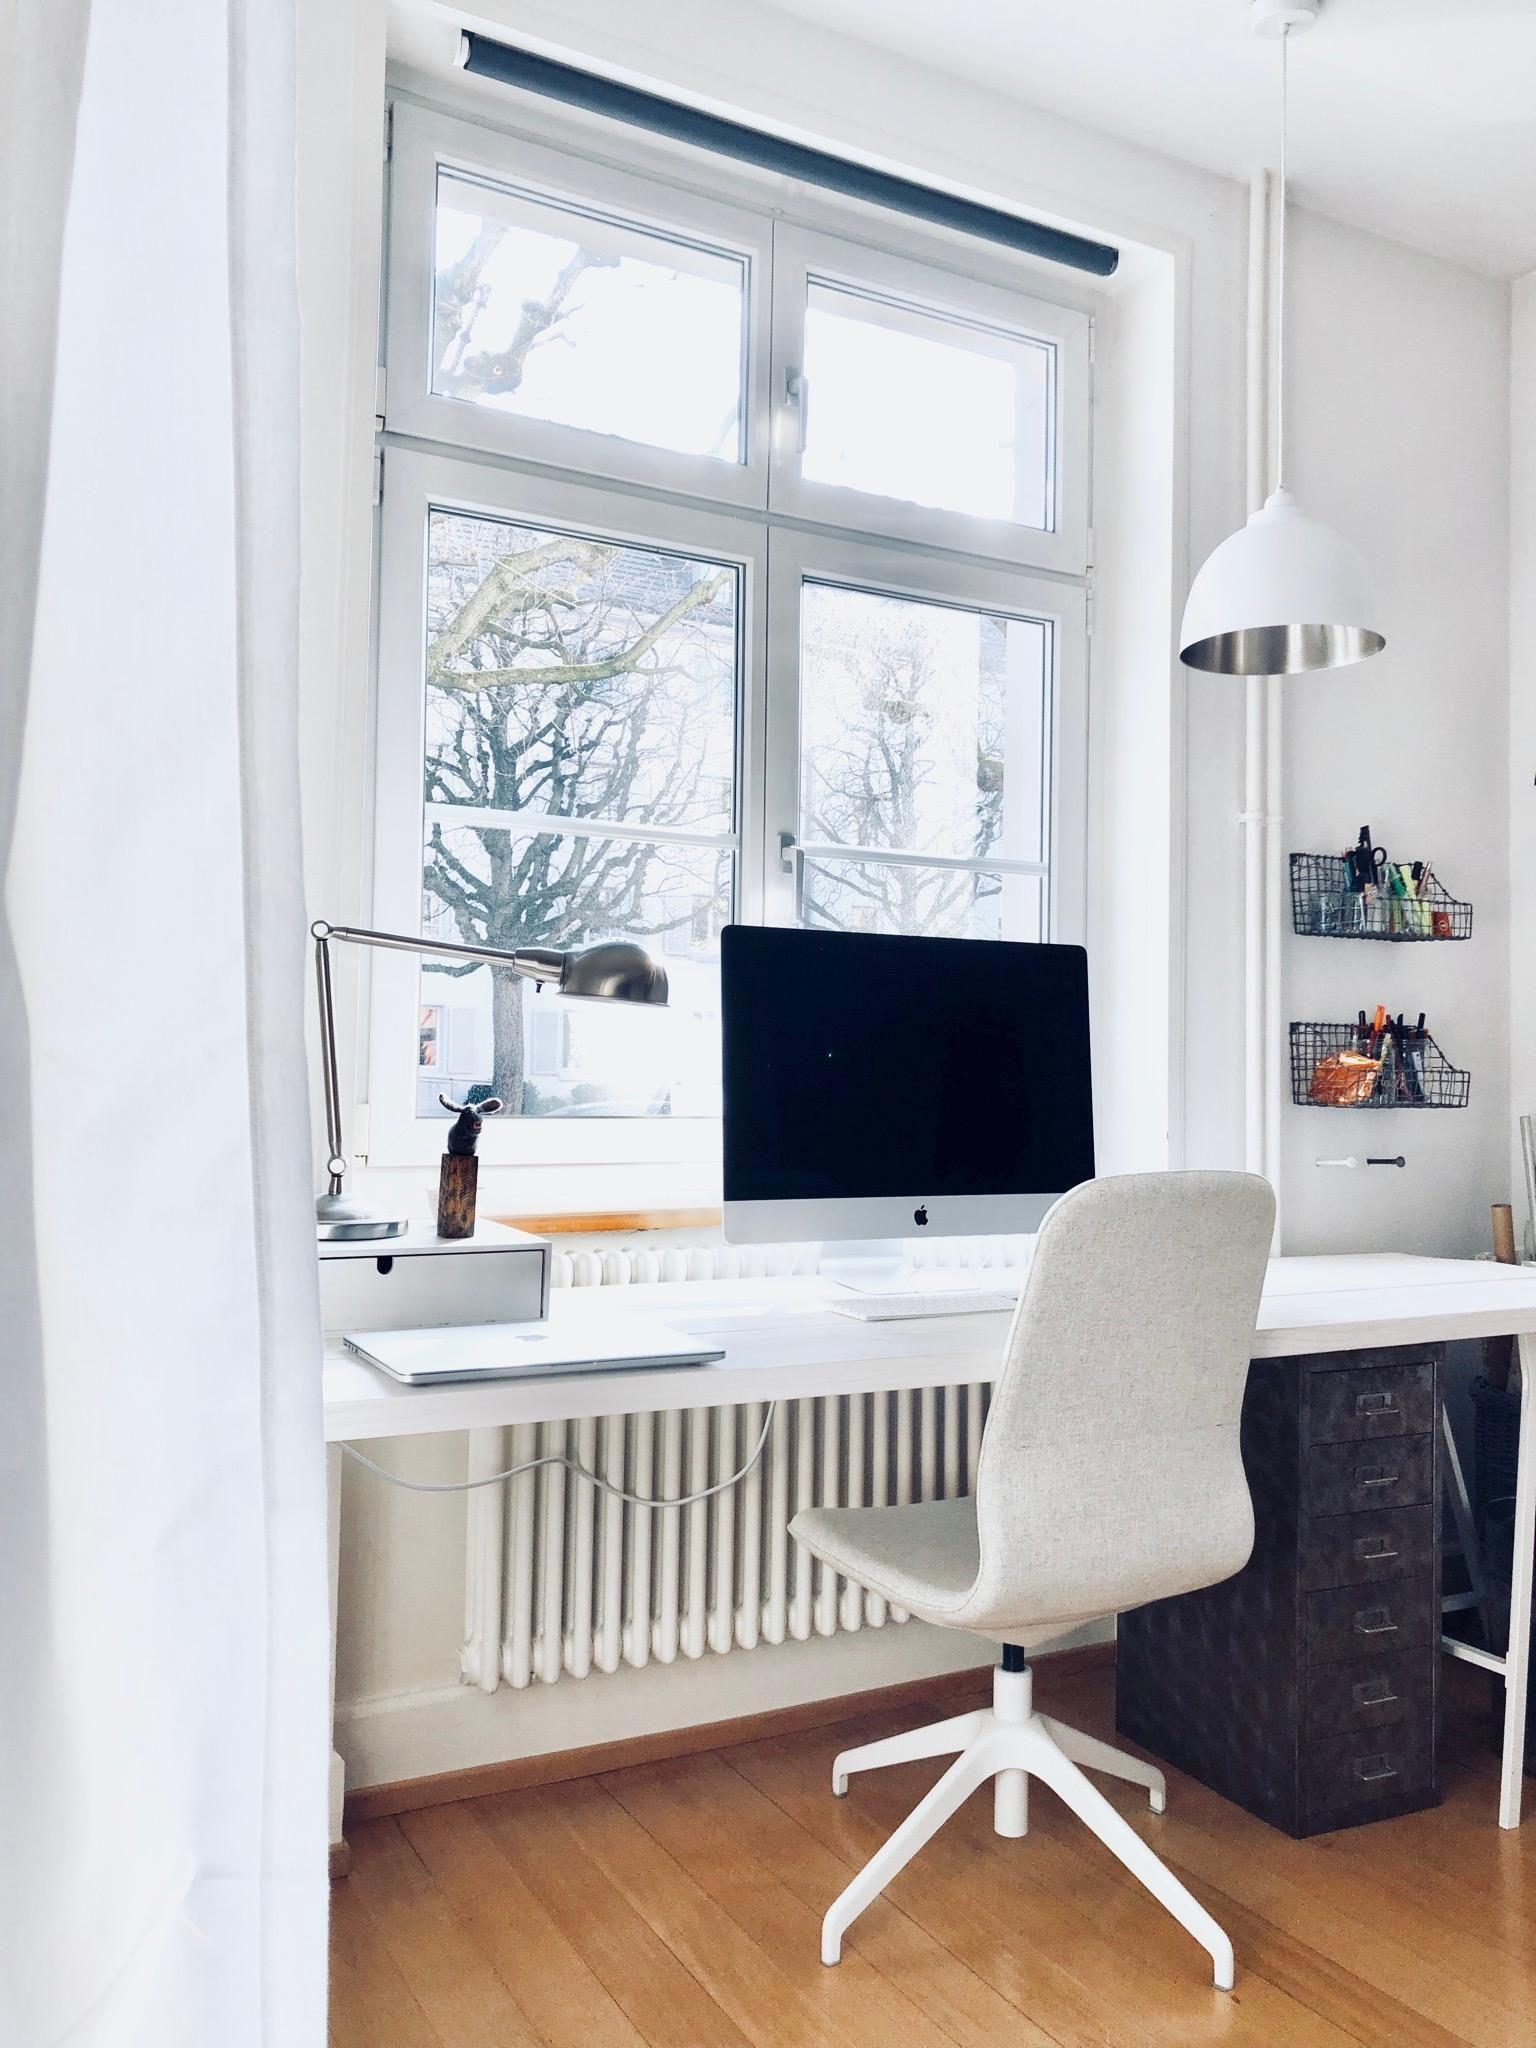 Place to be #homeoffice #workingstation #scandinavianliving #nordicstyle #white #grey